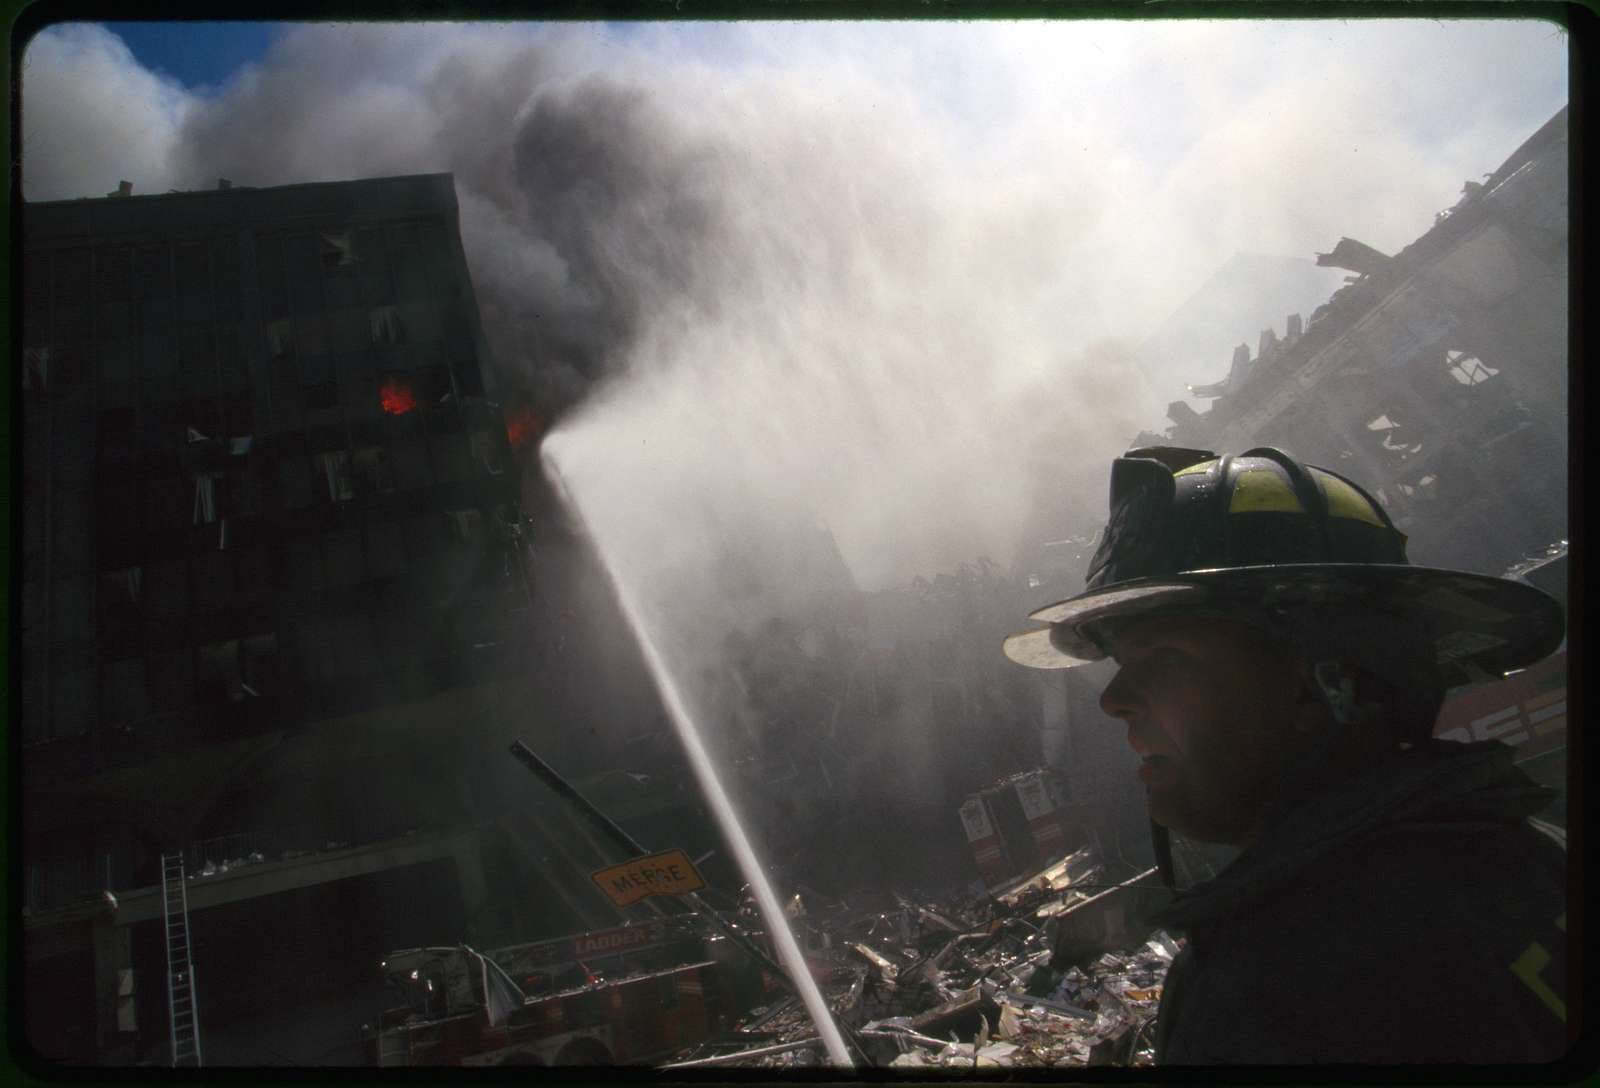 [Fire fighter in front of burning building and rubble following September 11th terrorist attack on World Trade Center, New York City]